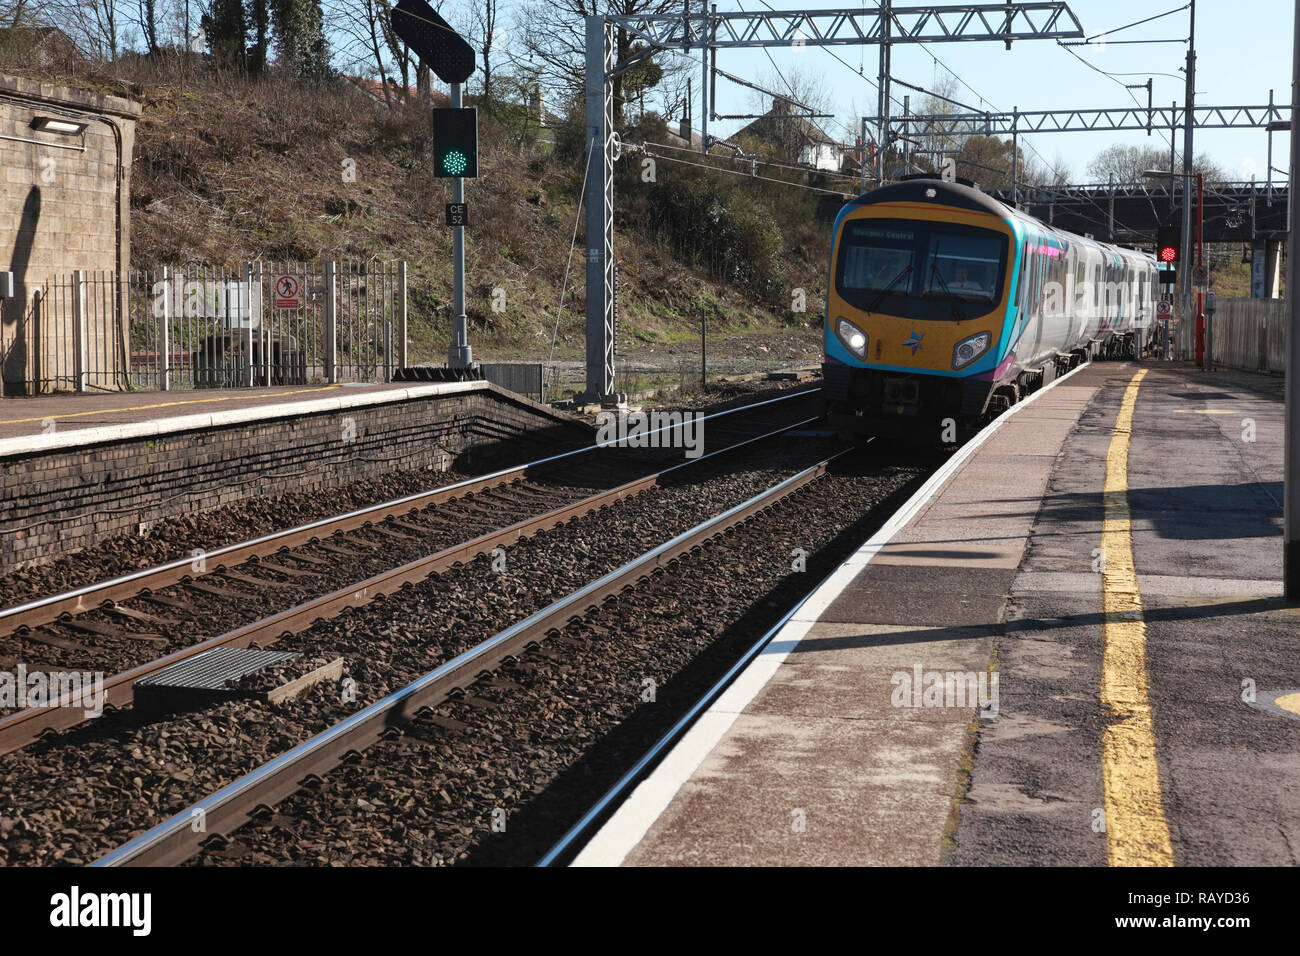 A TransPennine Express train approaching Platform 2 at Oxenholme station in the Lake District, Cumbria, northern England Stock Photo